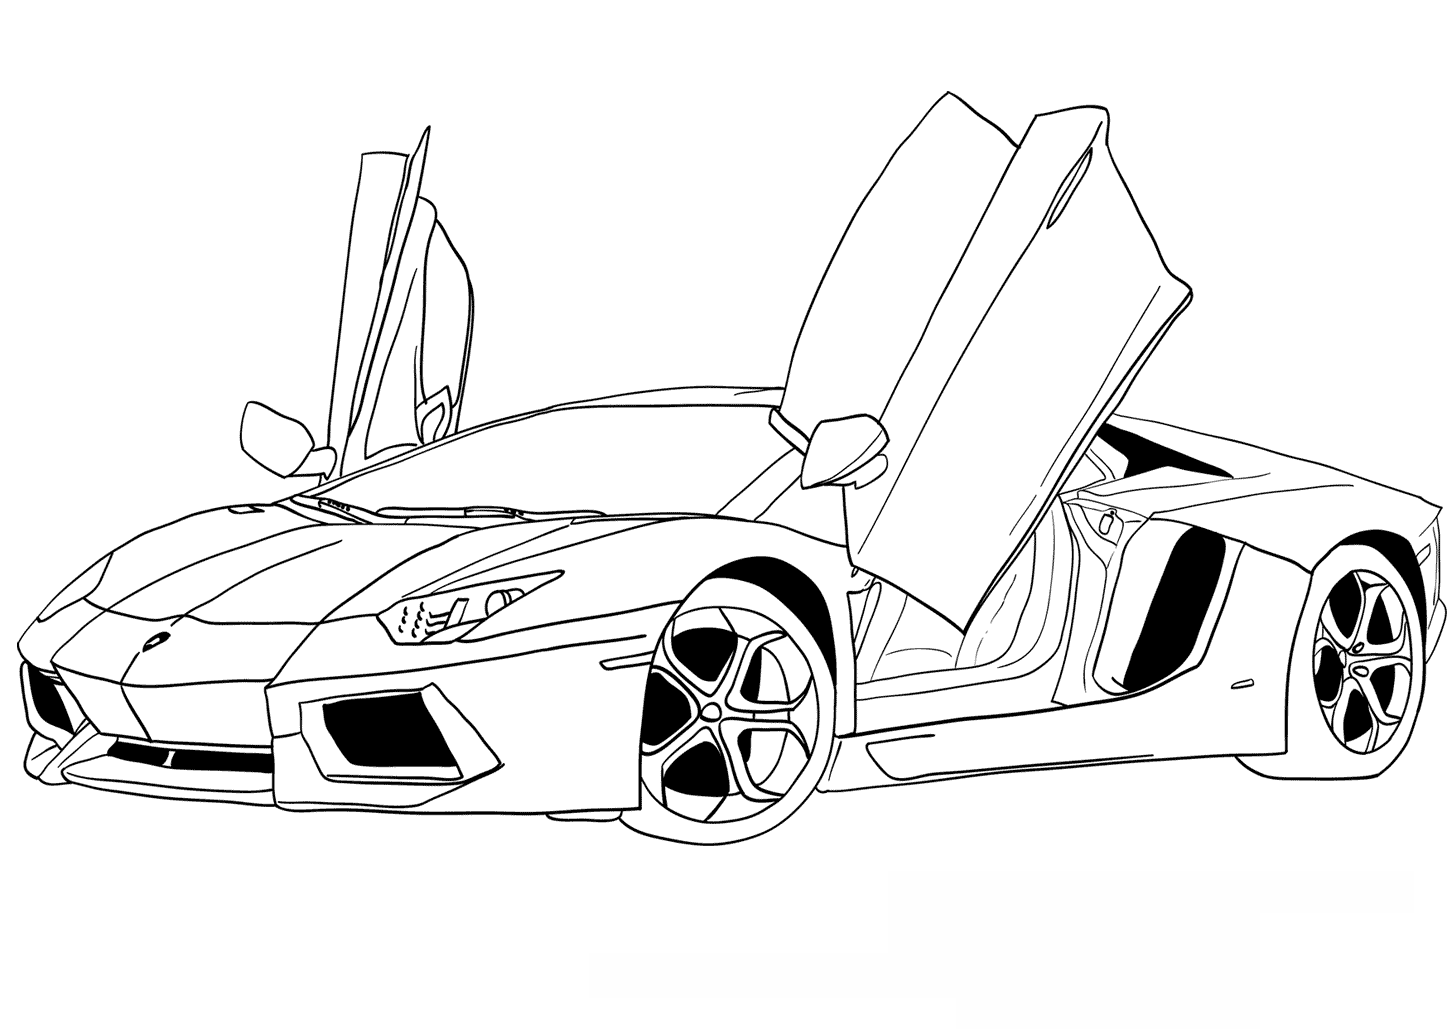 Ausmalbilder Lamborghini Gallardo Cars Coloring Pages Truck Coloring Pages Race Car Coloring Pages